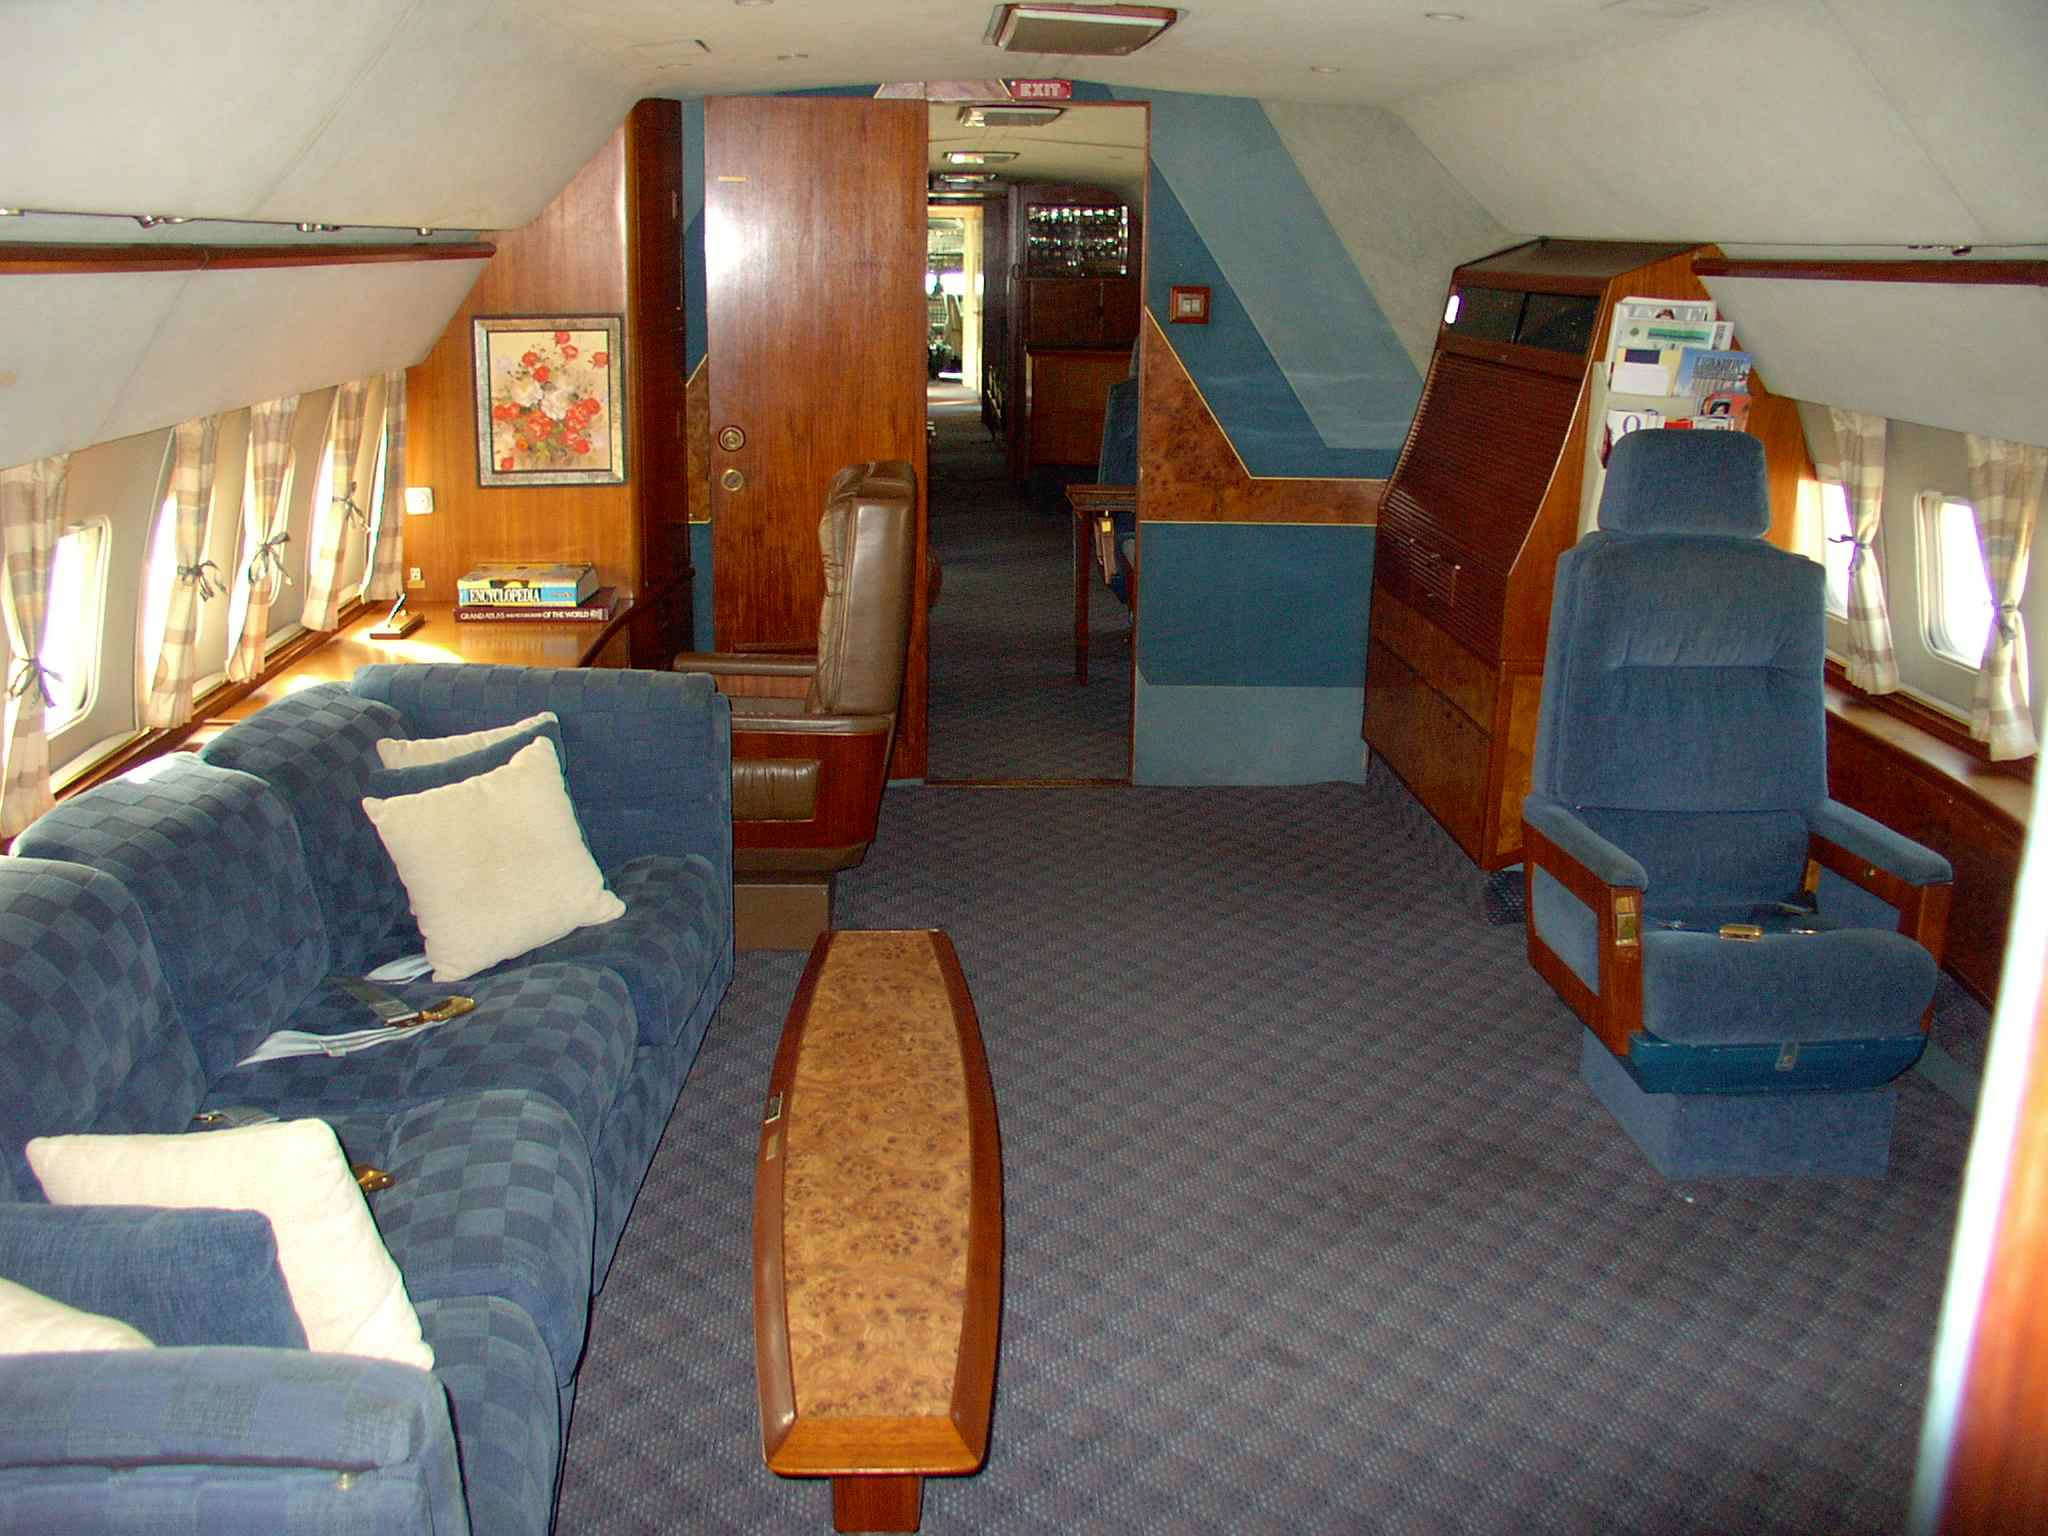 Air Force One Inside Bedroom The Image